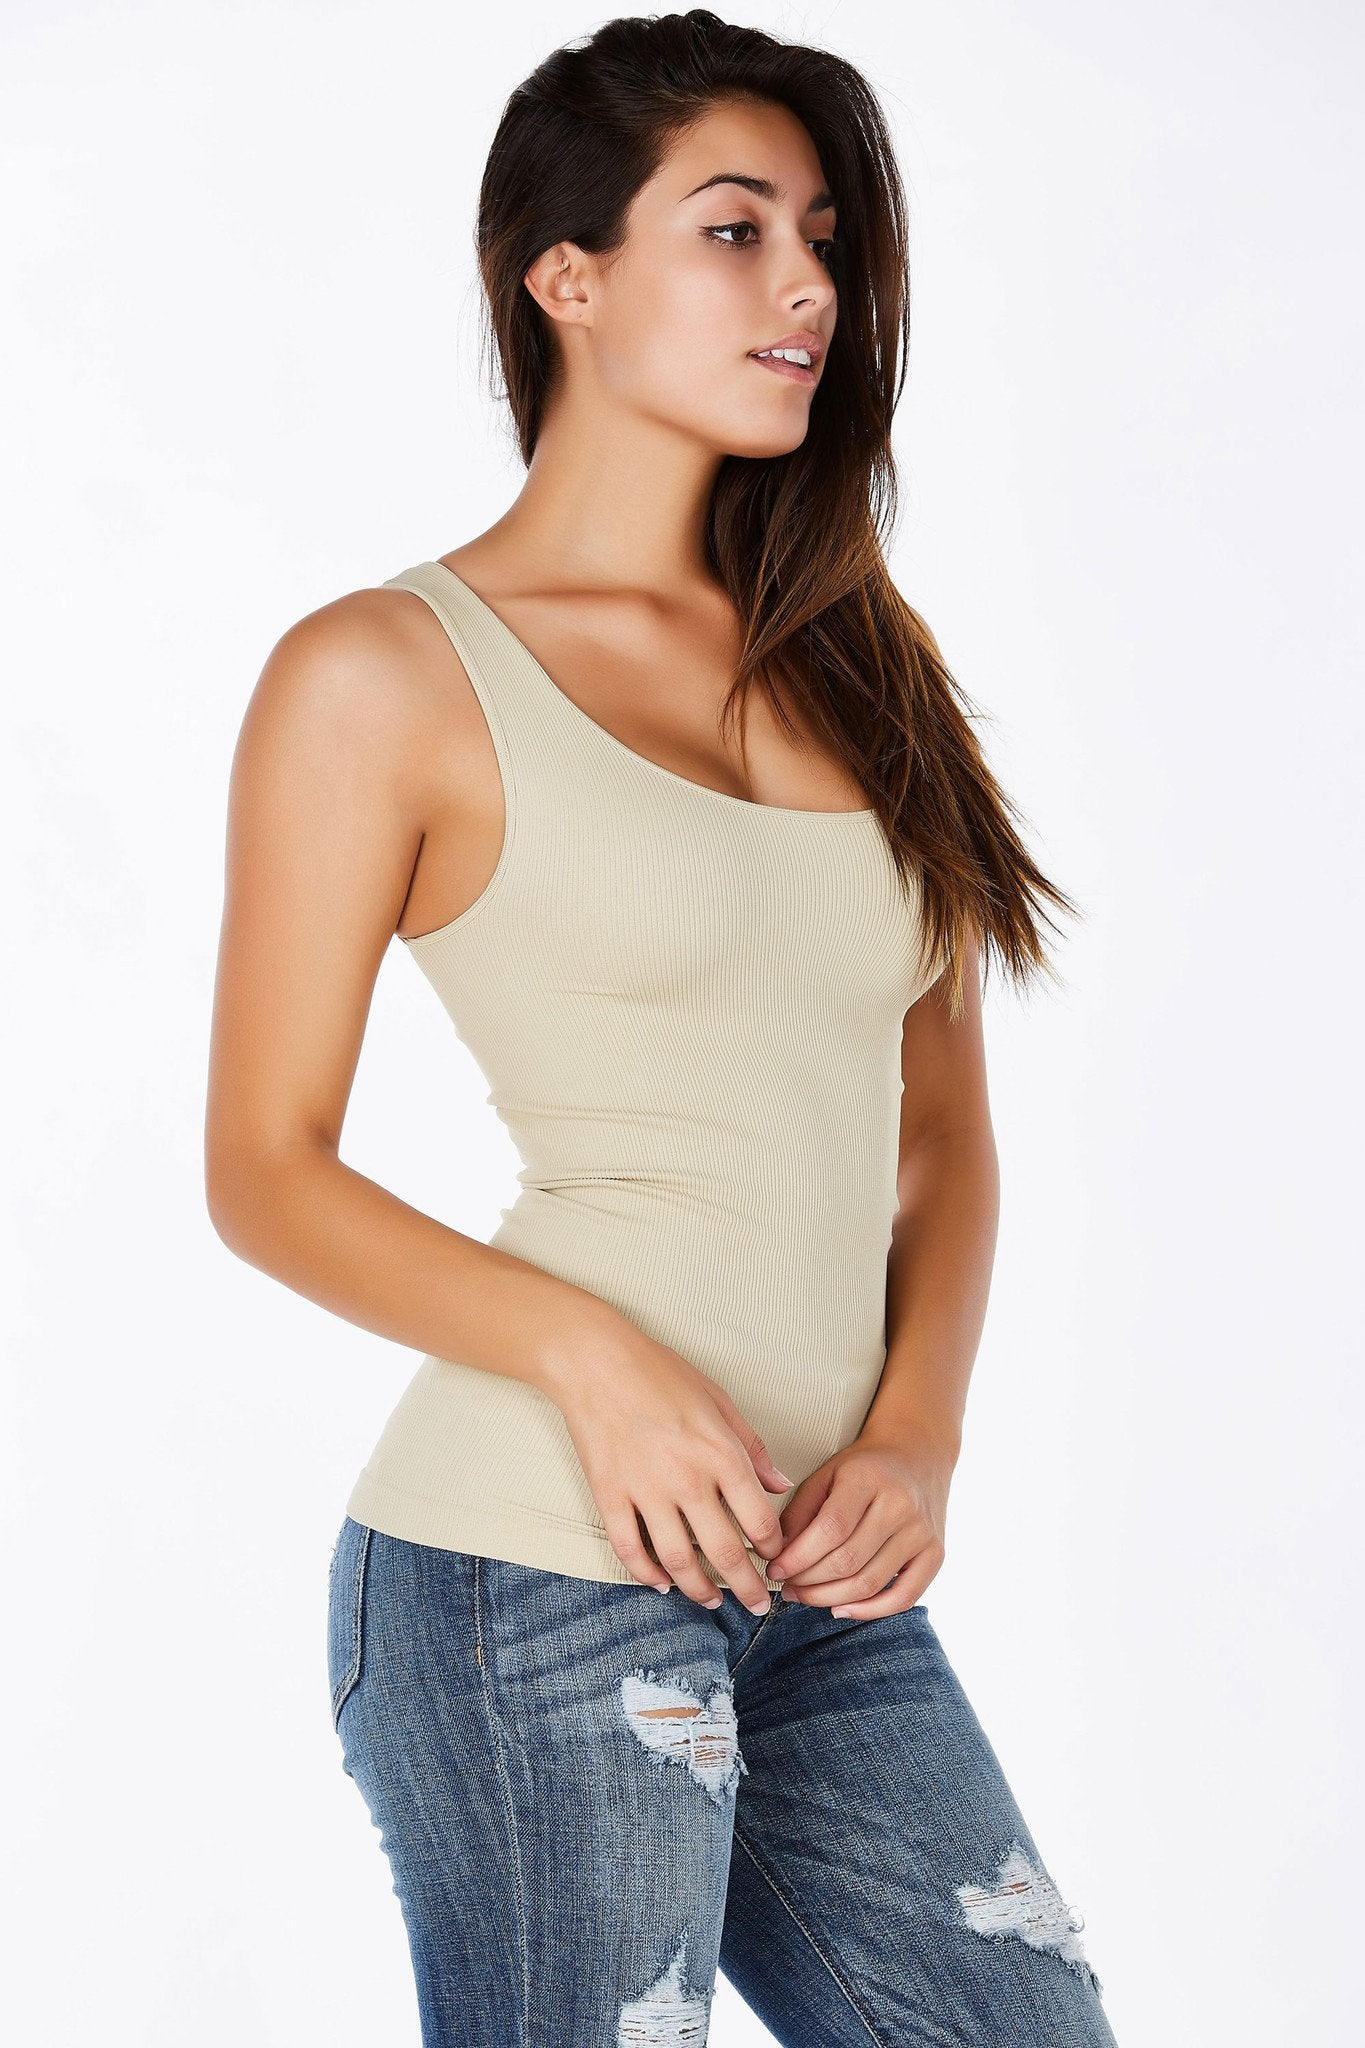 The perfect ribbed basic tank top! This top has ribbed fabric throughout with a tight fit. Has a good spandex content to it, one size fits all.